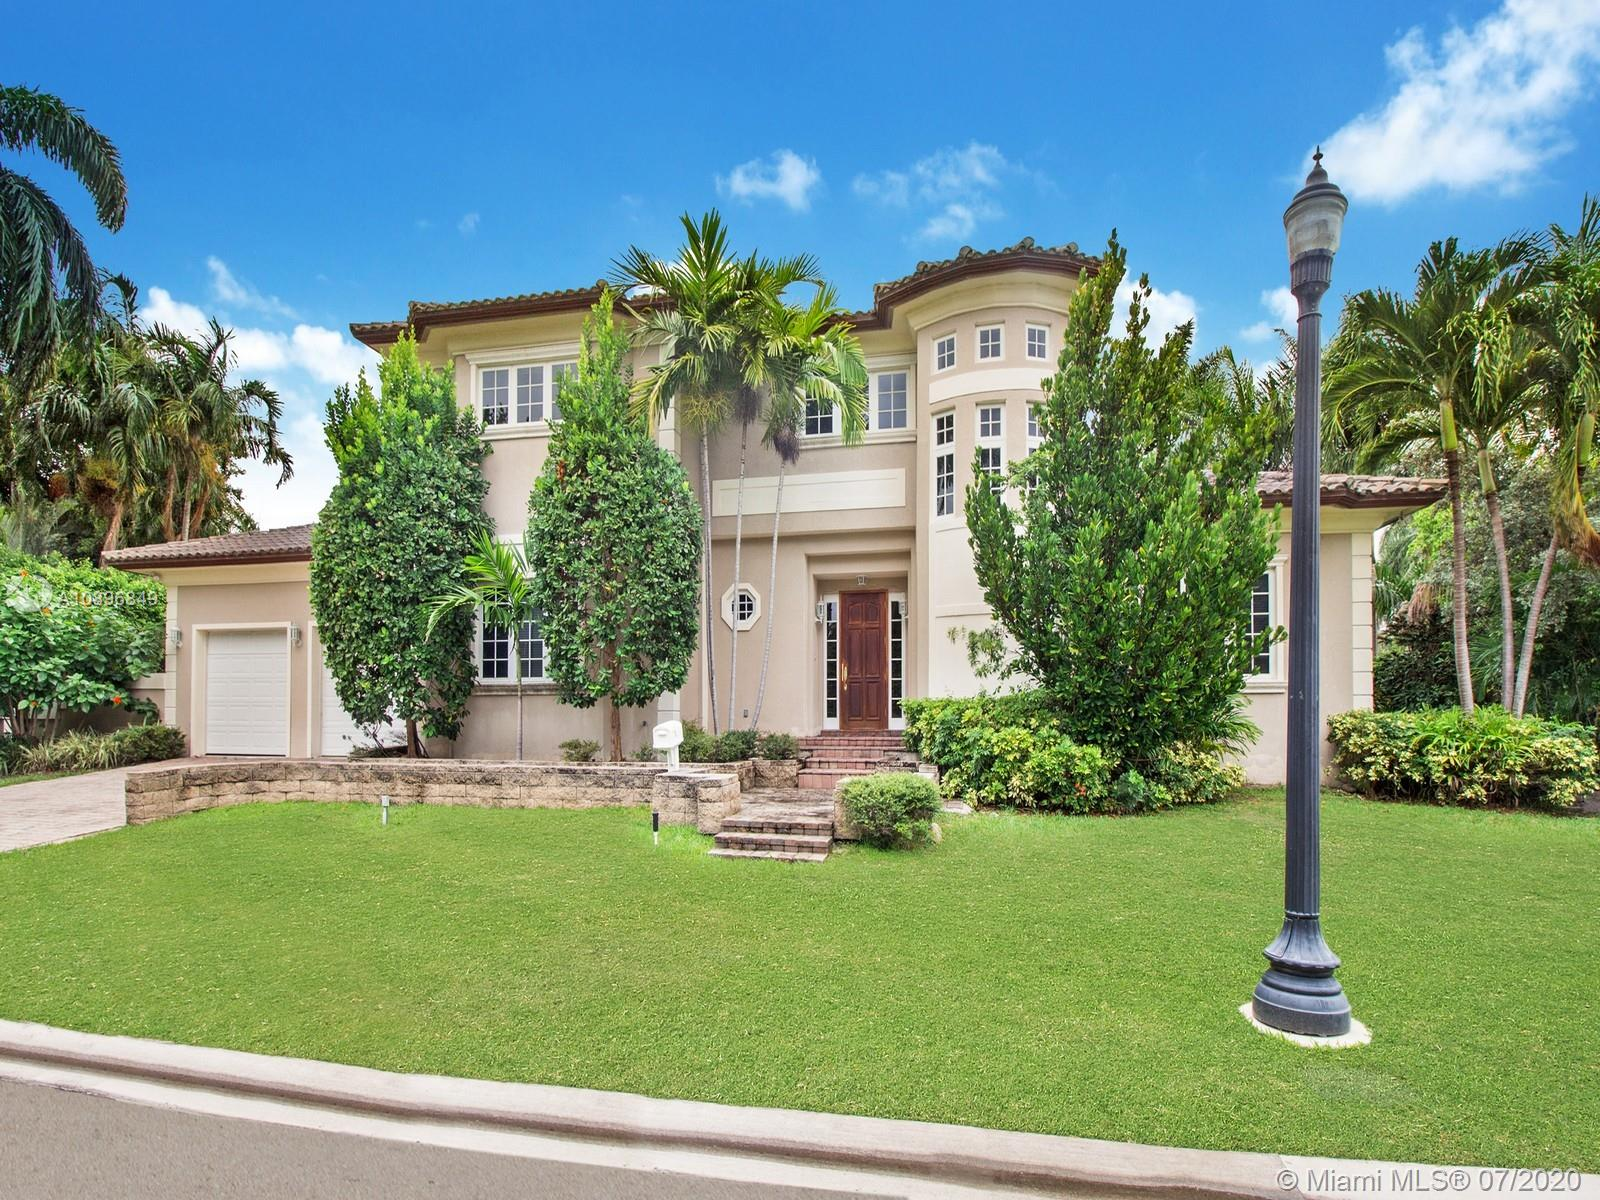 Photo of 201 W San Marino Dr # listing for Sale